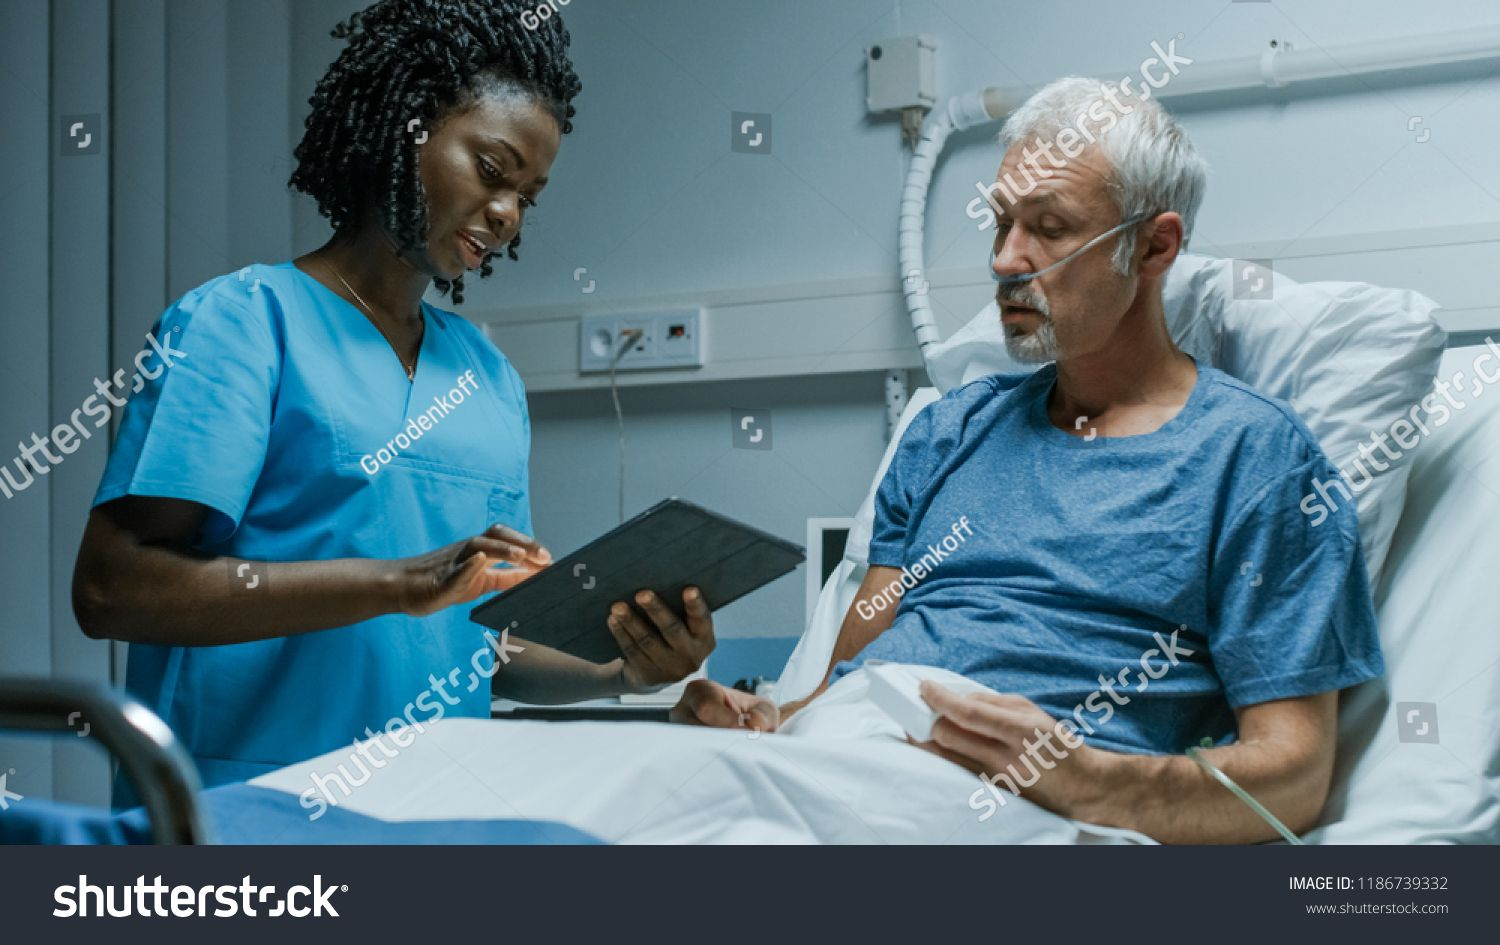 In the Hospital, Senior Patient Lying in the Bed Talking